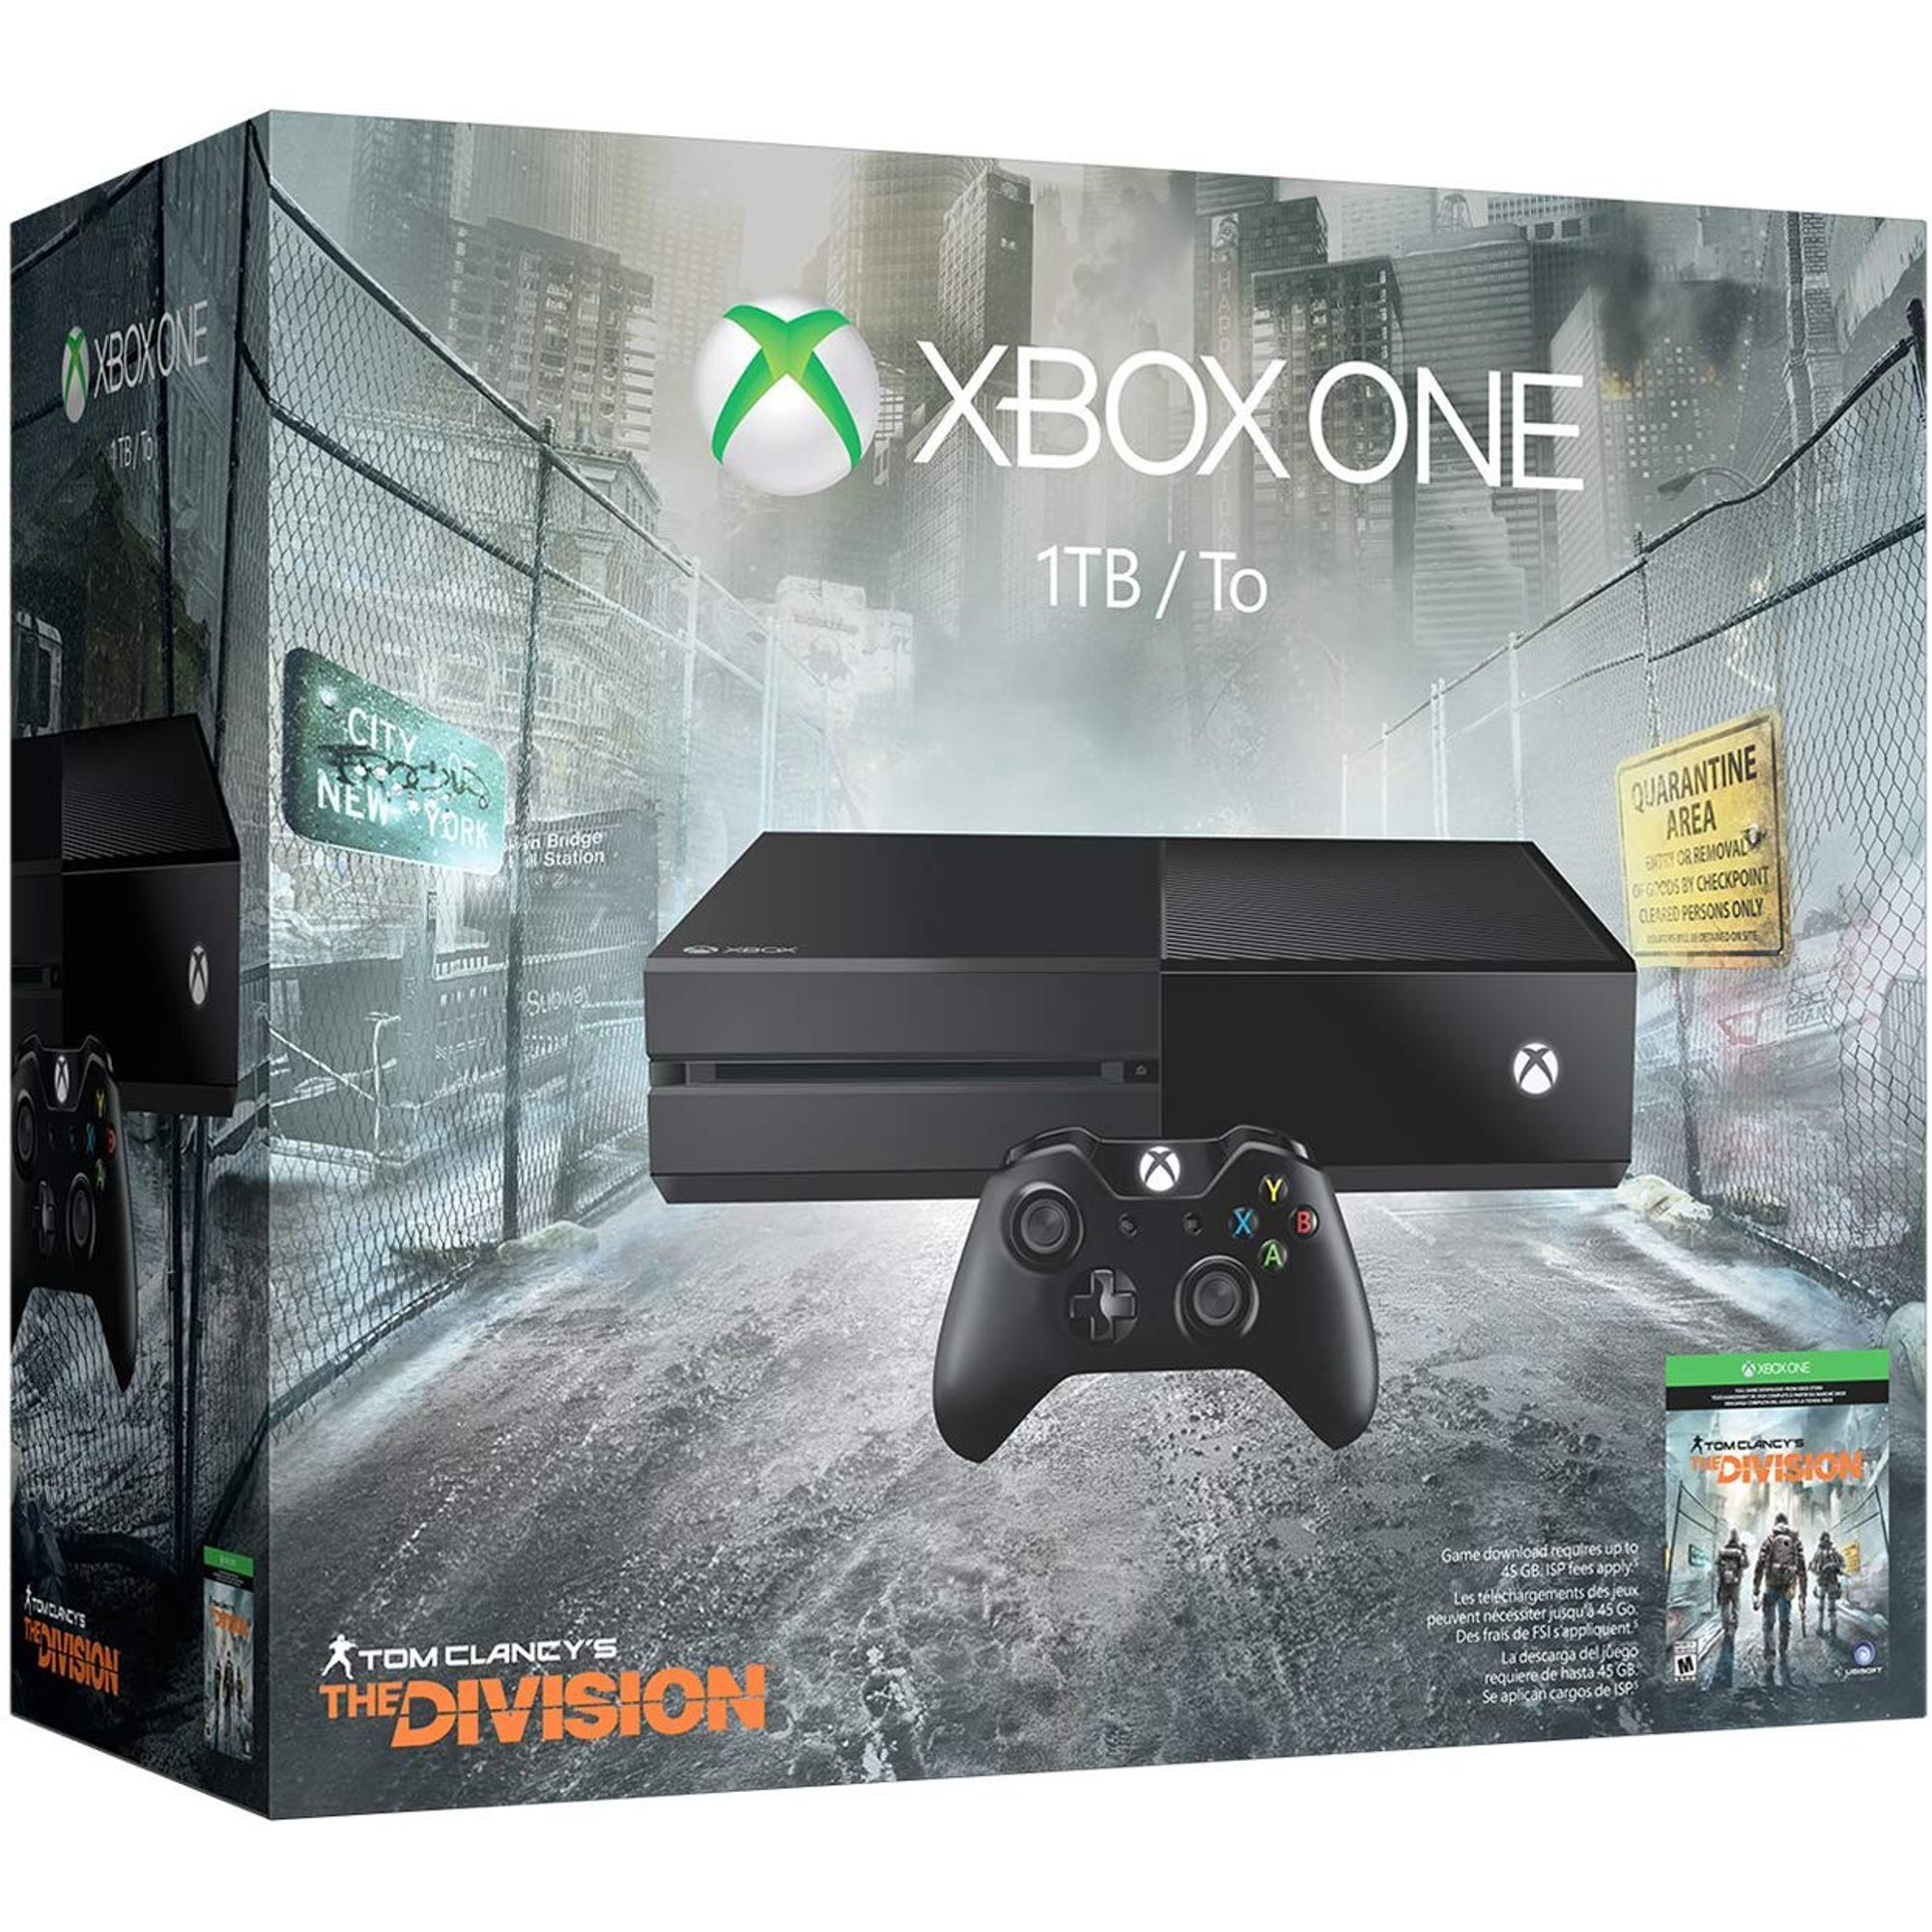 Microsoft Xbox One 1TB Console - Tom Clancy's The Division